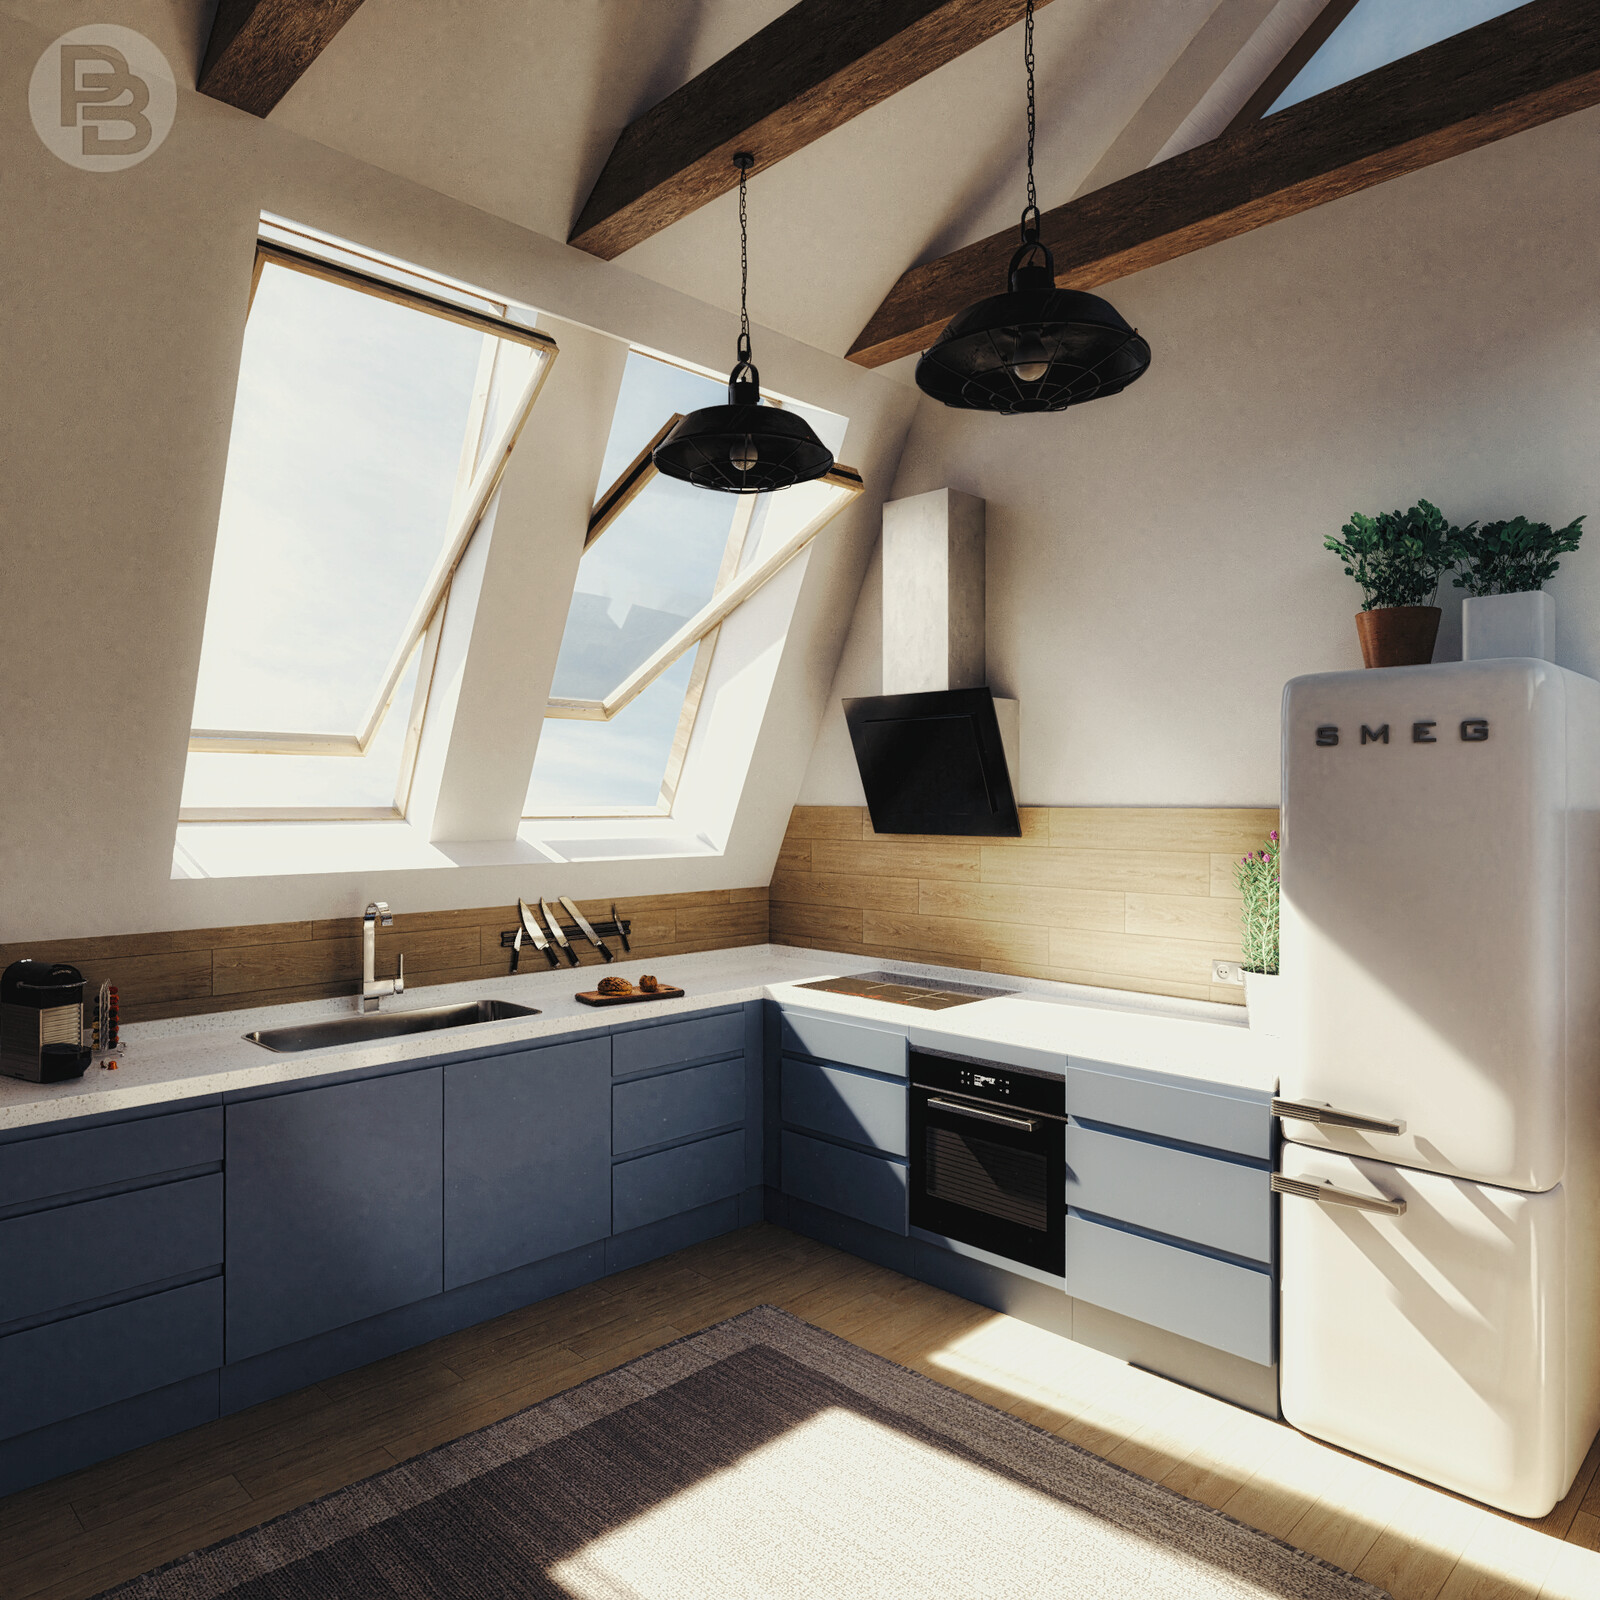 Kitchen in attic